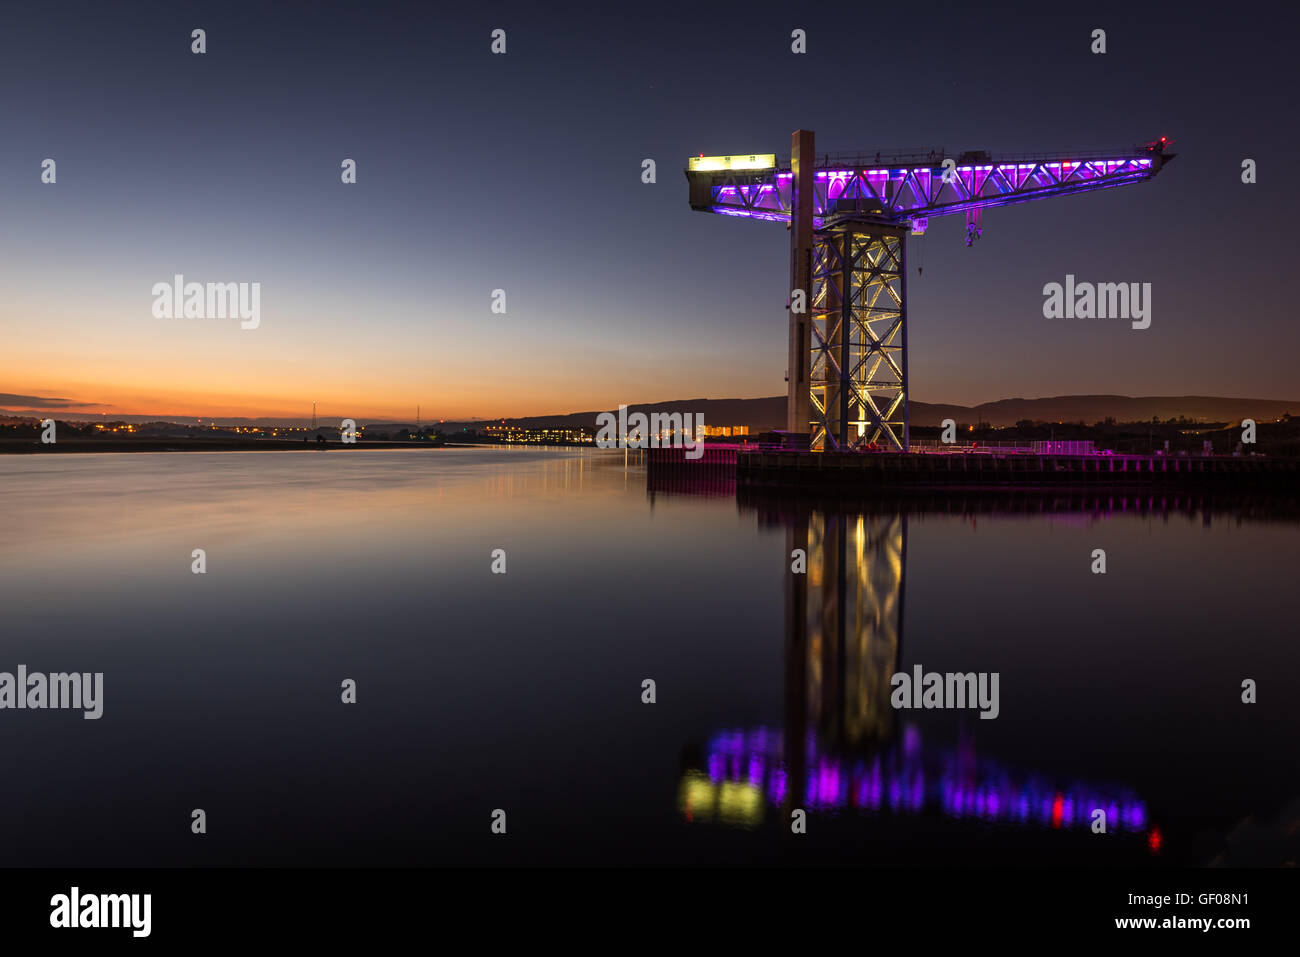 One of the few remaining Titan cranes remaining in Scotland, reflecting in the River Clyde at Clydebank - Stock Image